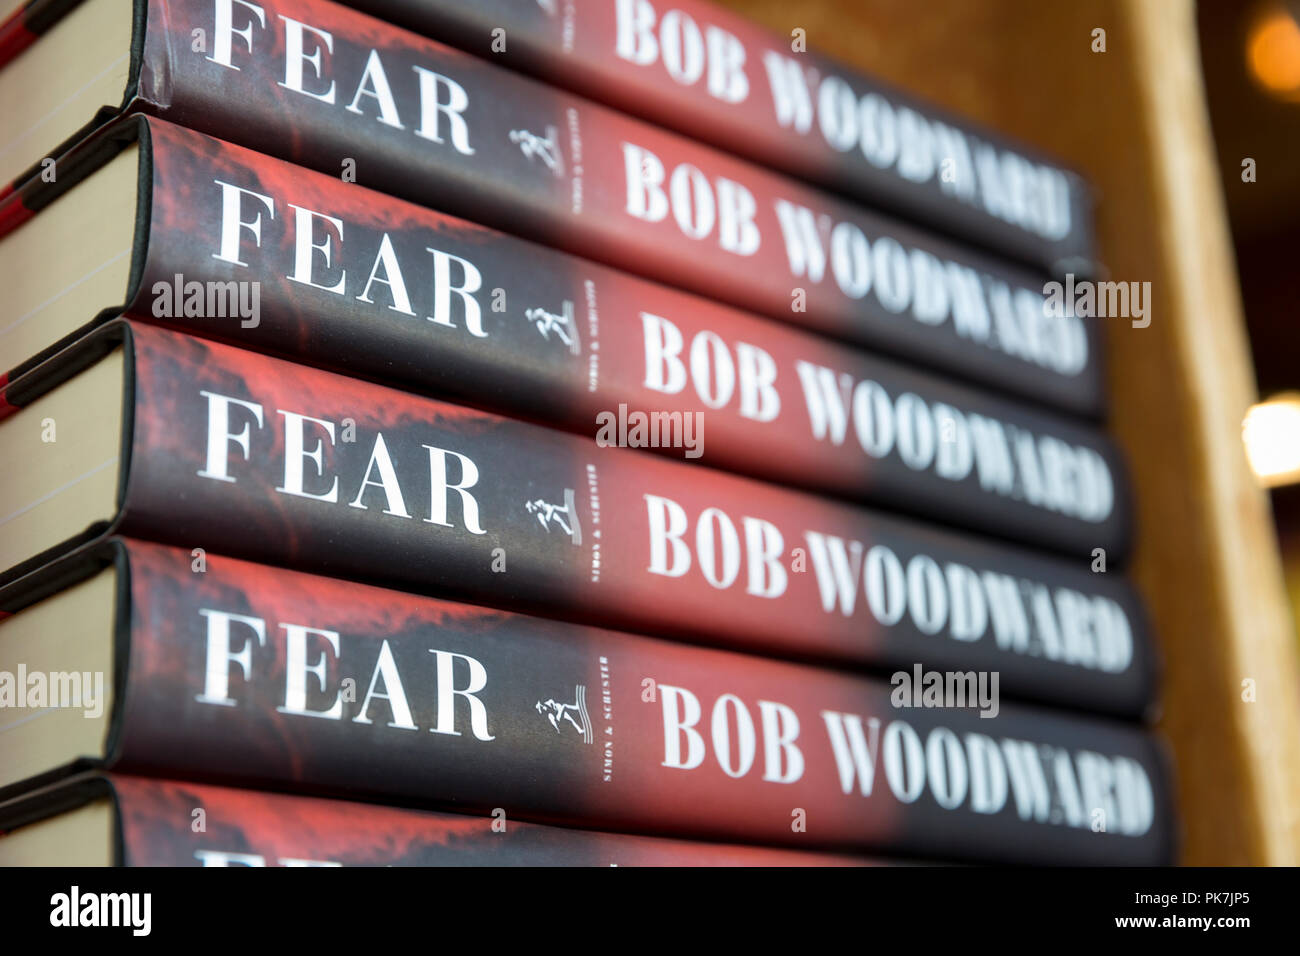 Seattle Washington: Bob Woodward's book 'Fear: Trump in the White House' on sale at Elliott Bay Book Company on September 11, 2018. Woodward interviewed many members of the Trump administration for the newly published book, ultimately concluding that the white house is chaotic and dysfunctional. A respected journalist for decades, Woodward was first made famous for his reporting on the Watergate scandal in 1972. - Stock Image